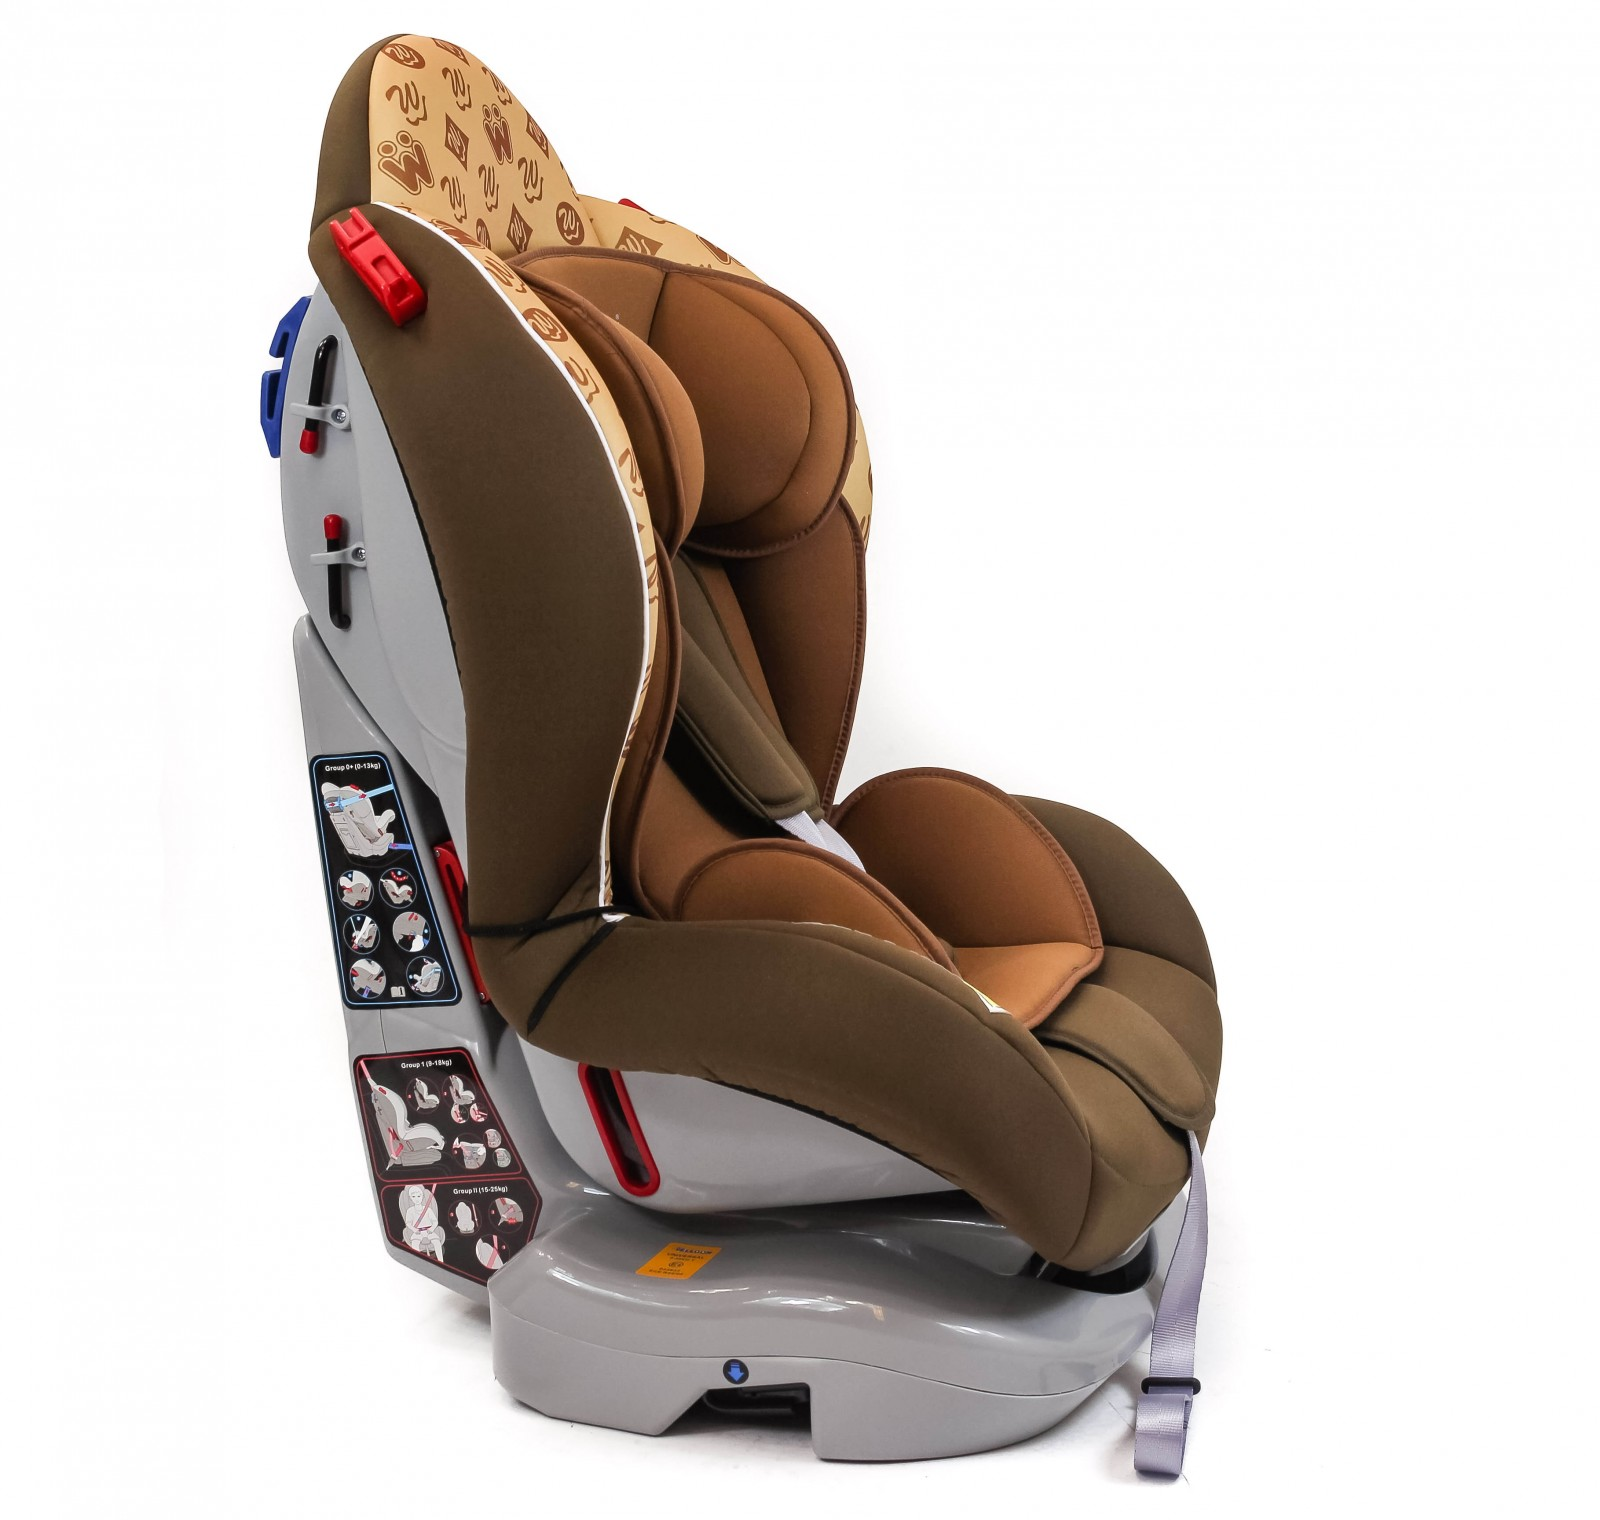 infant car seat brown 0 25kg qeridoo sport wise pseudo reboarder. Black Bedroom Furniture Sets. Home Design Ideas